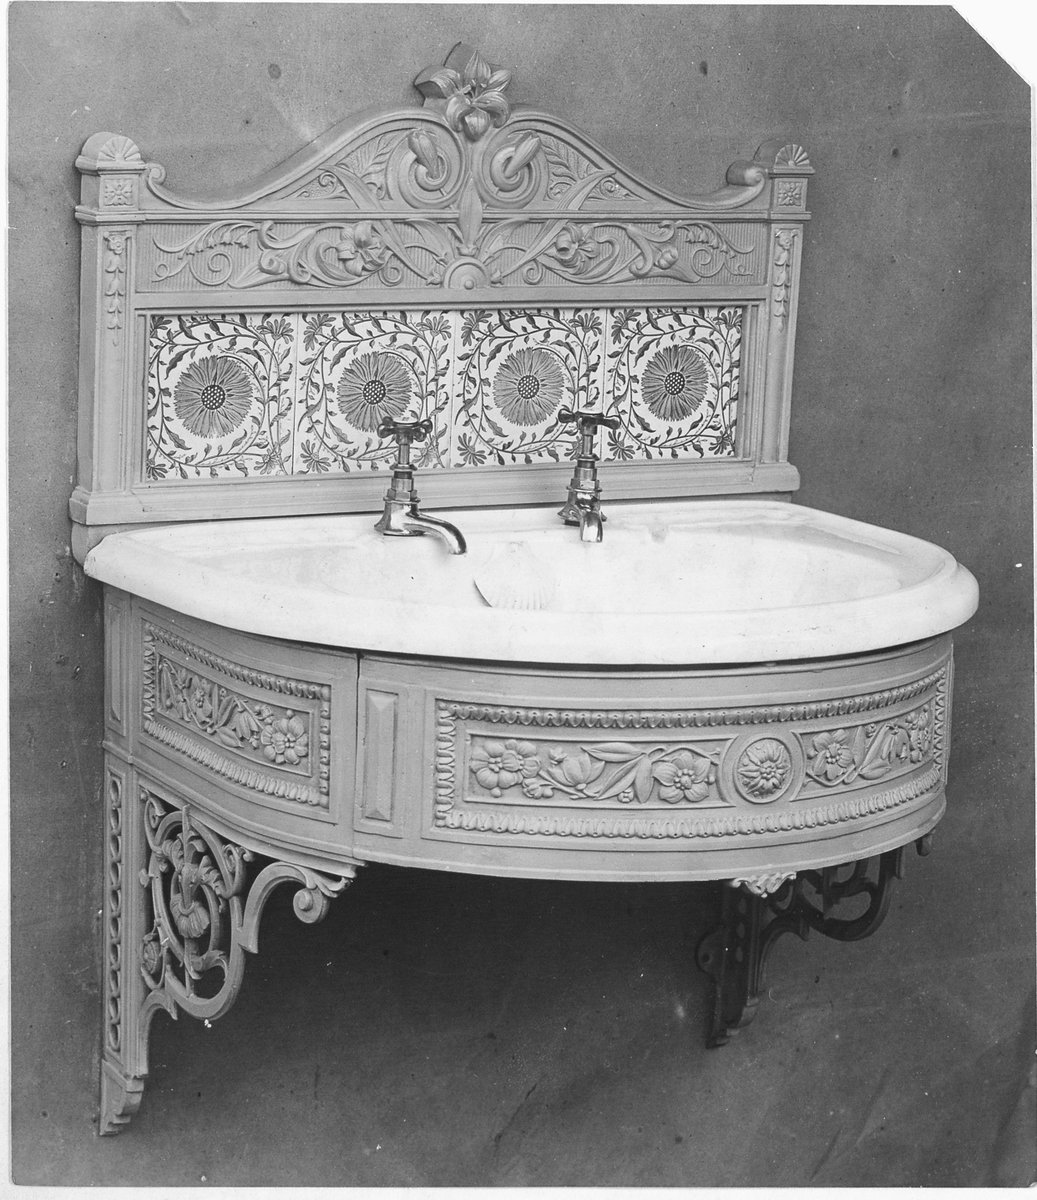 For the @ARAScot 'What's in #ArchiveBox 13' game and for #IronworkThursday here's a circa 1895 cast iron 'lavatory stand' from the Lion Foundry collection (GD10/7/4/13/1) @EDLC_Culture